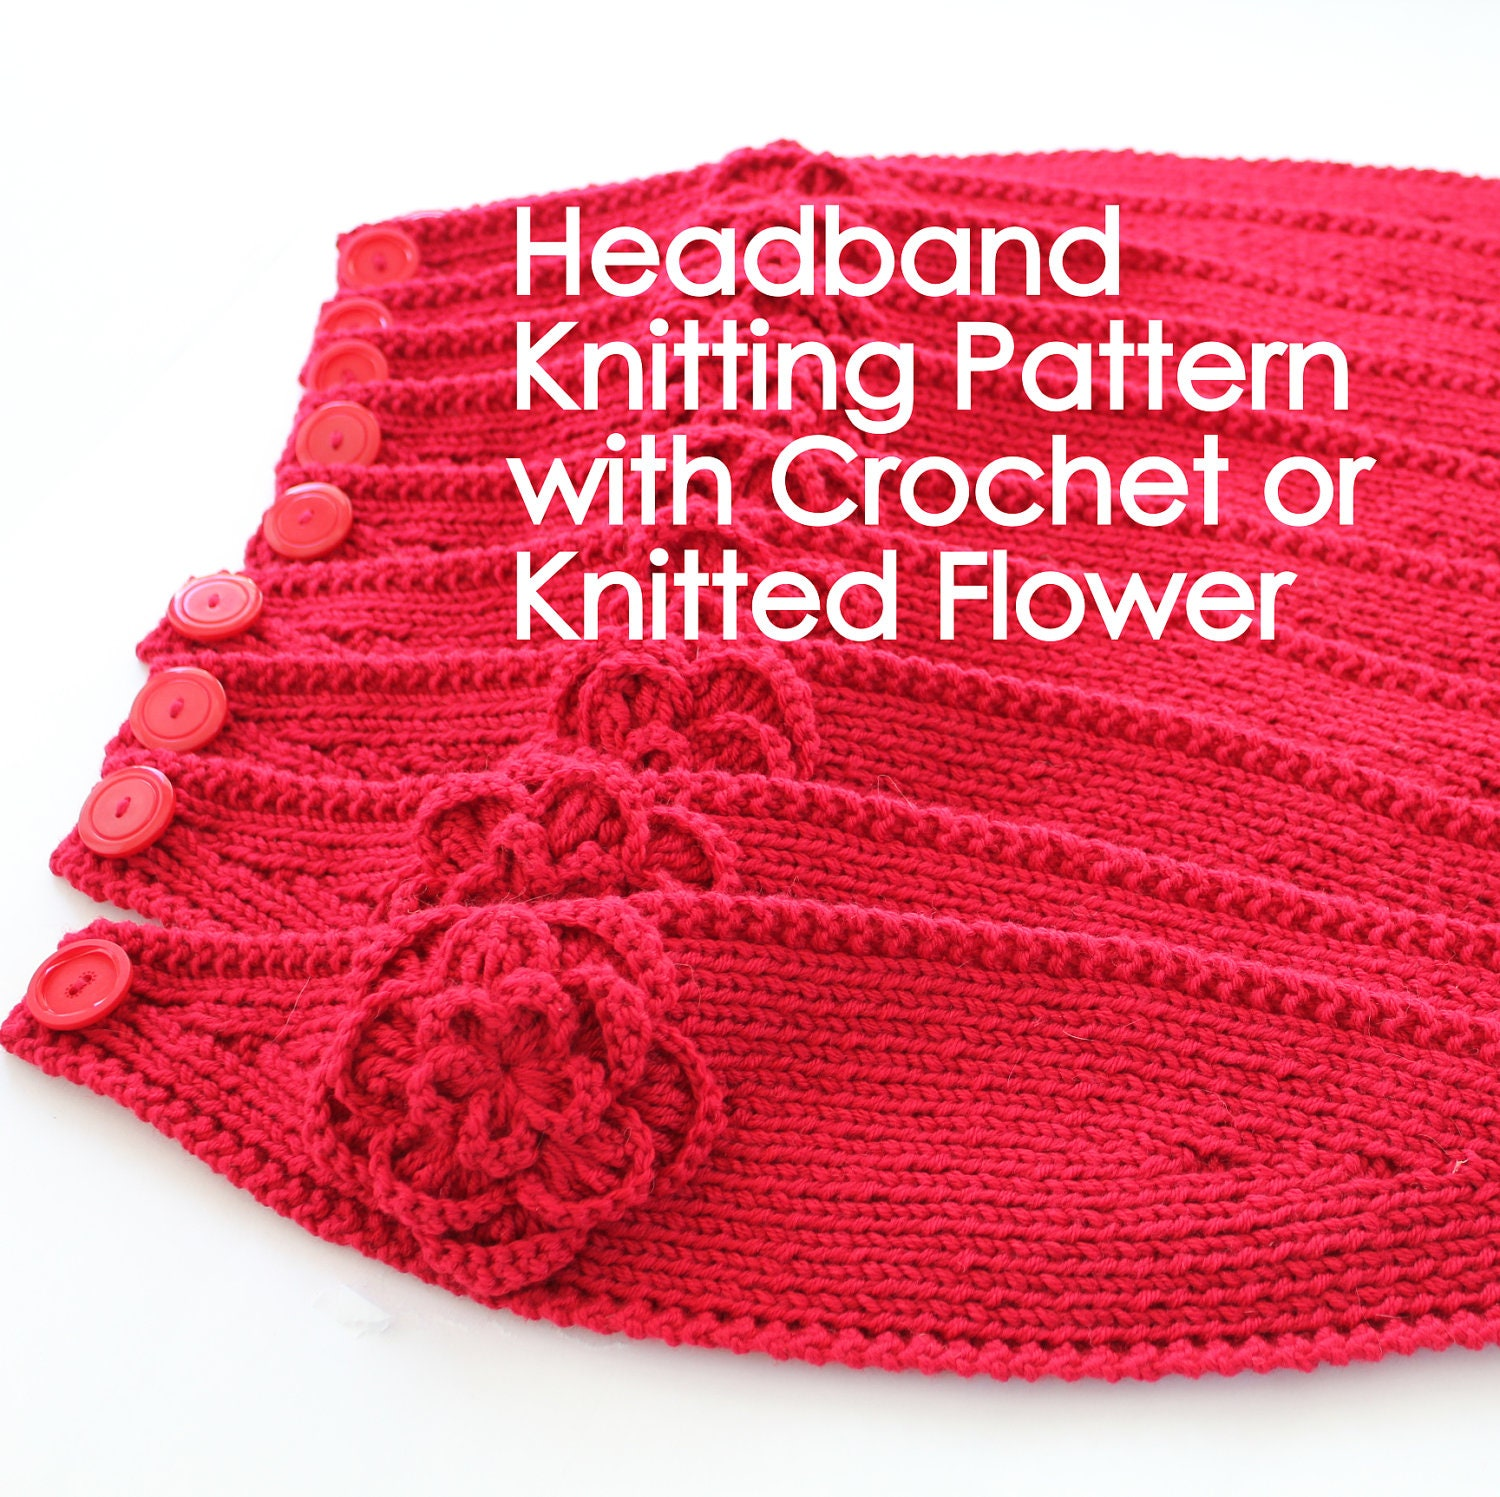 Knitted Headband Patterns With Flower : KNITTING PATTERN Headband with Crochet Or Knitted Flower